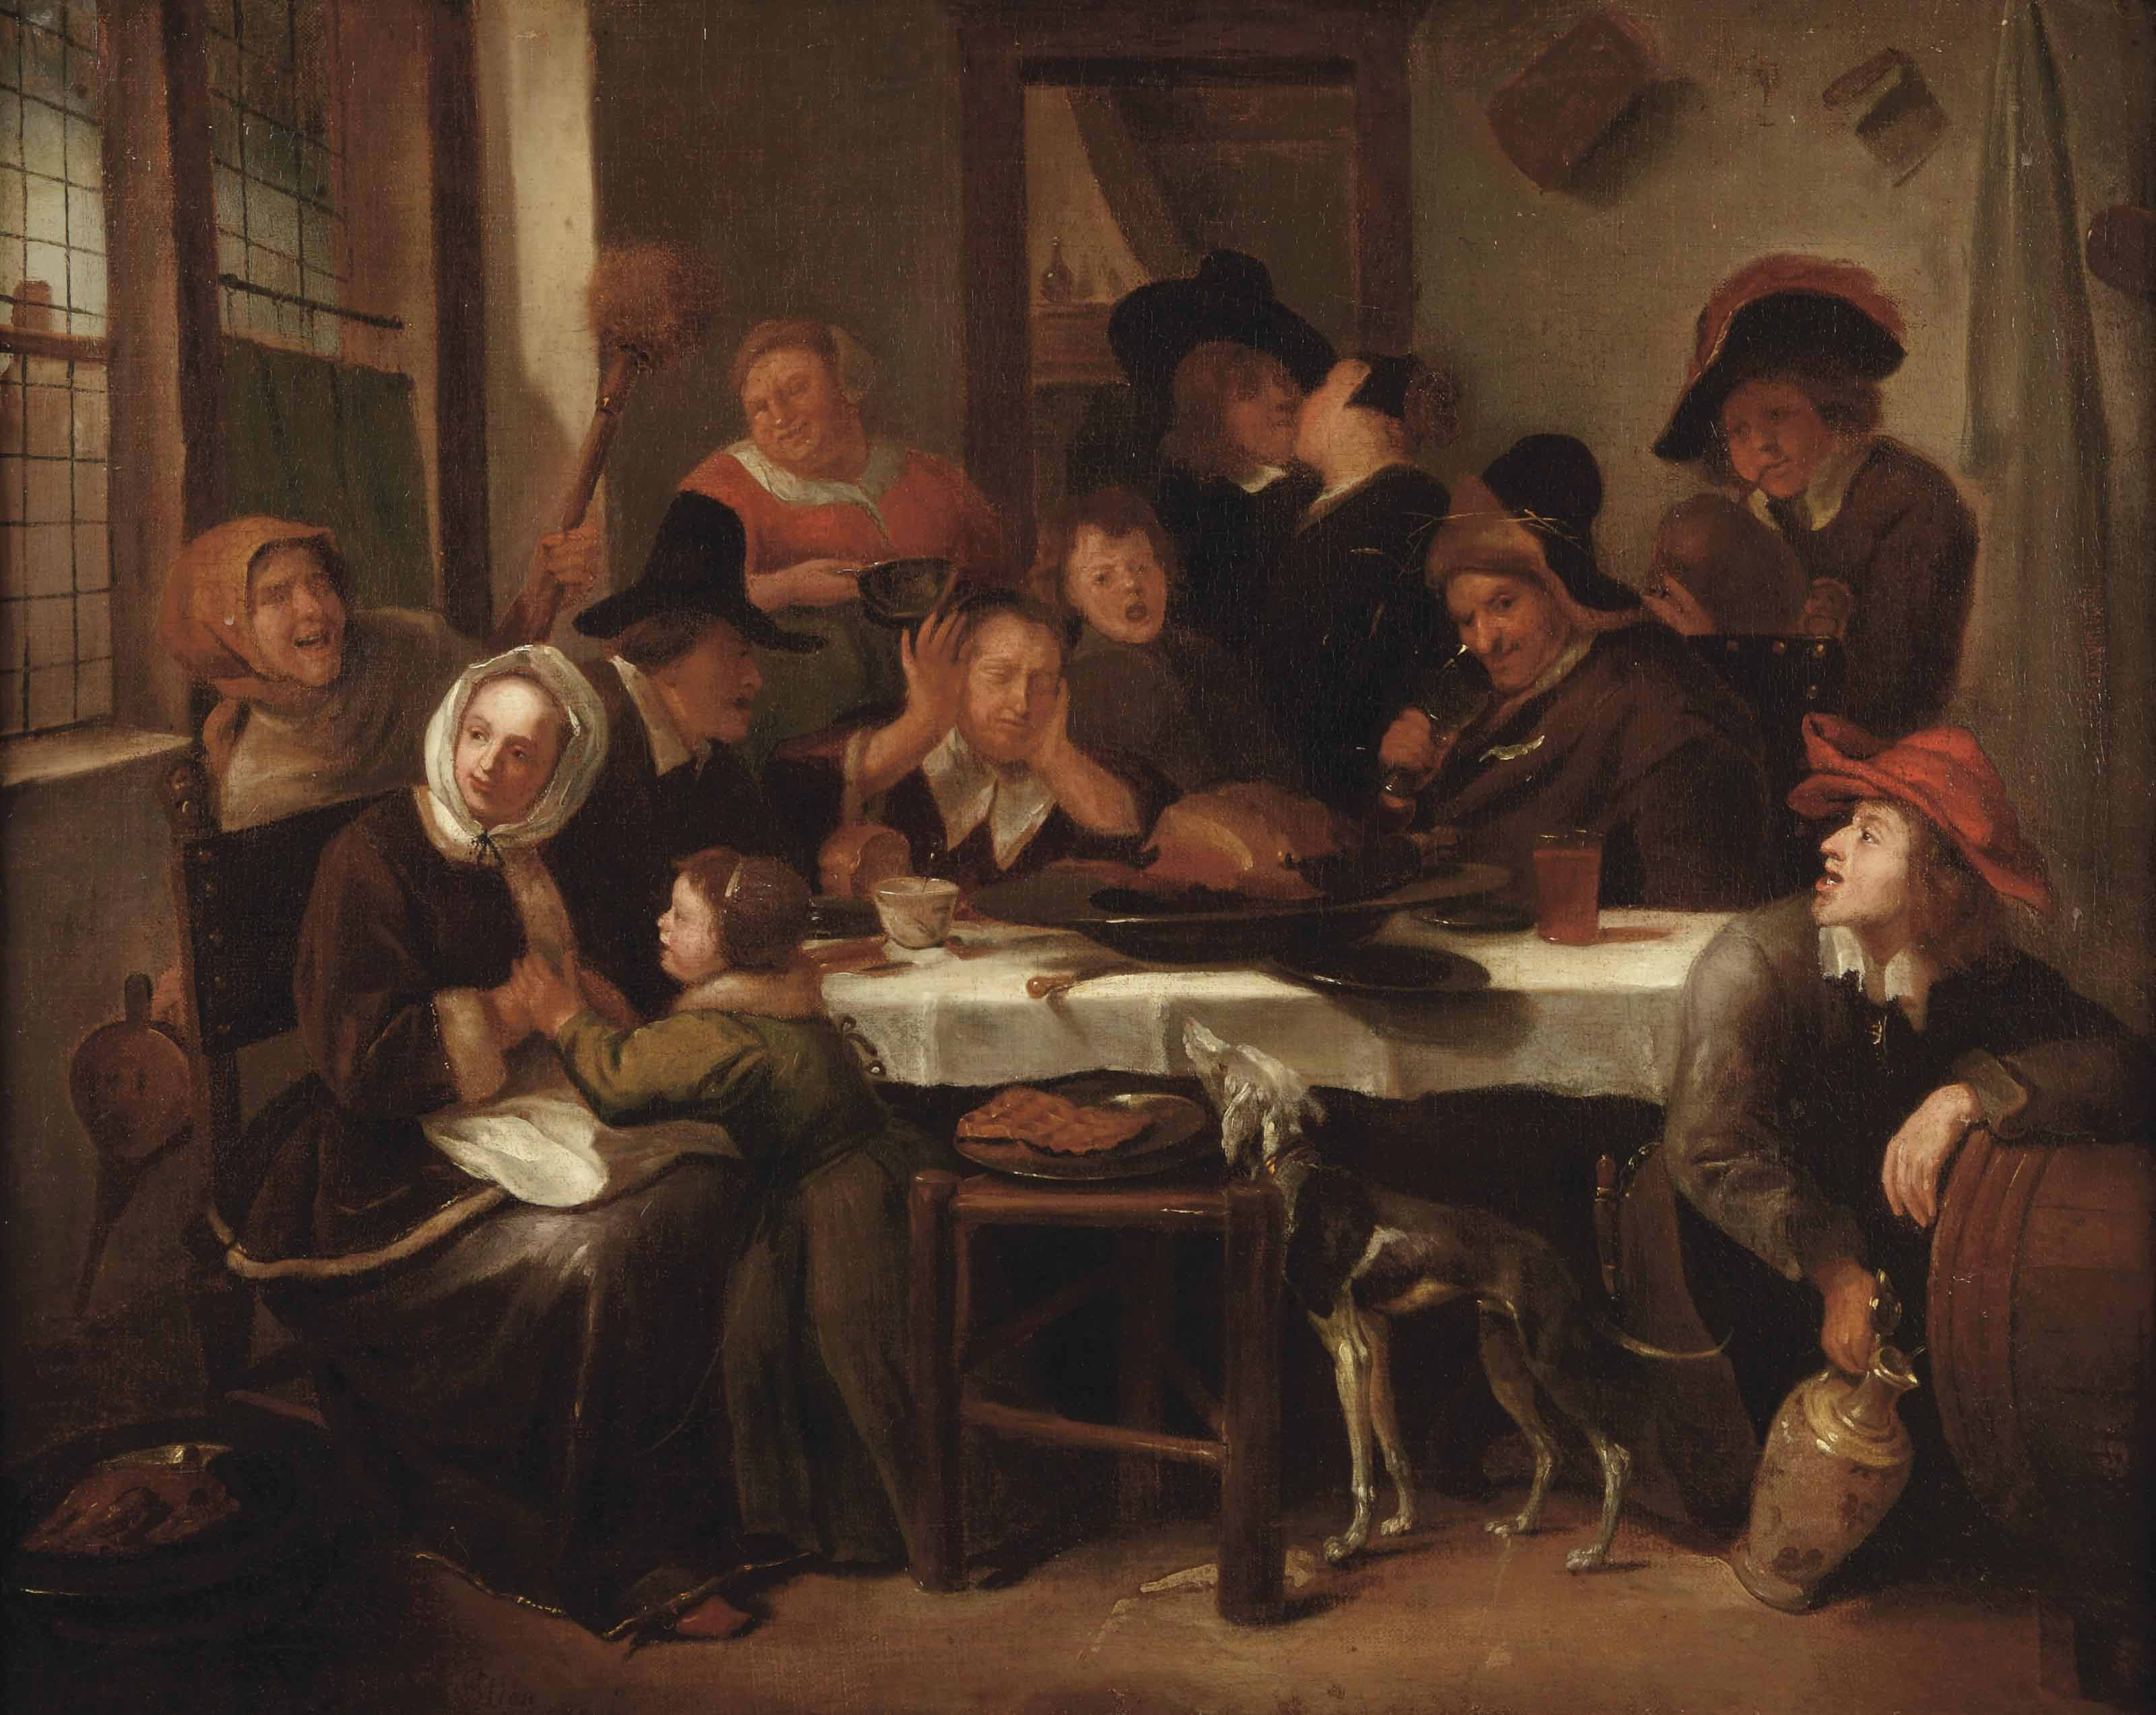 A merry company eating and drinking in an interior